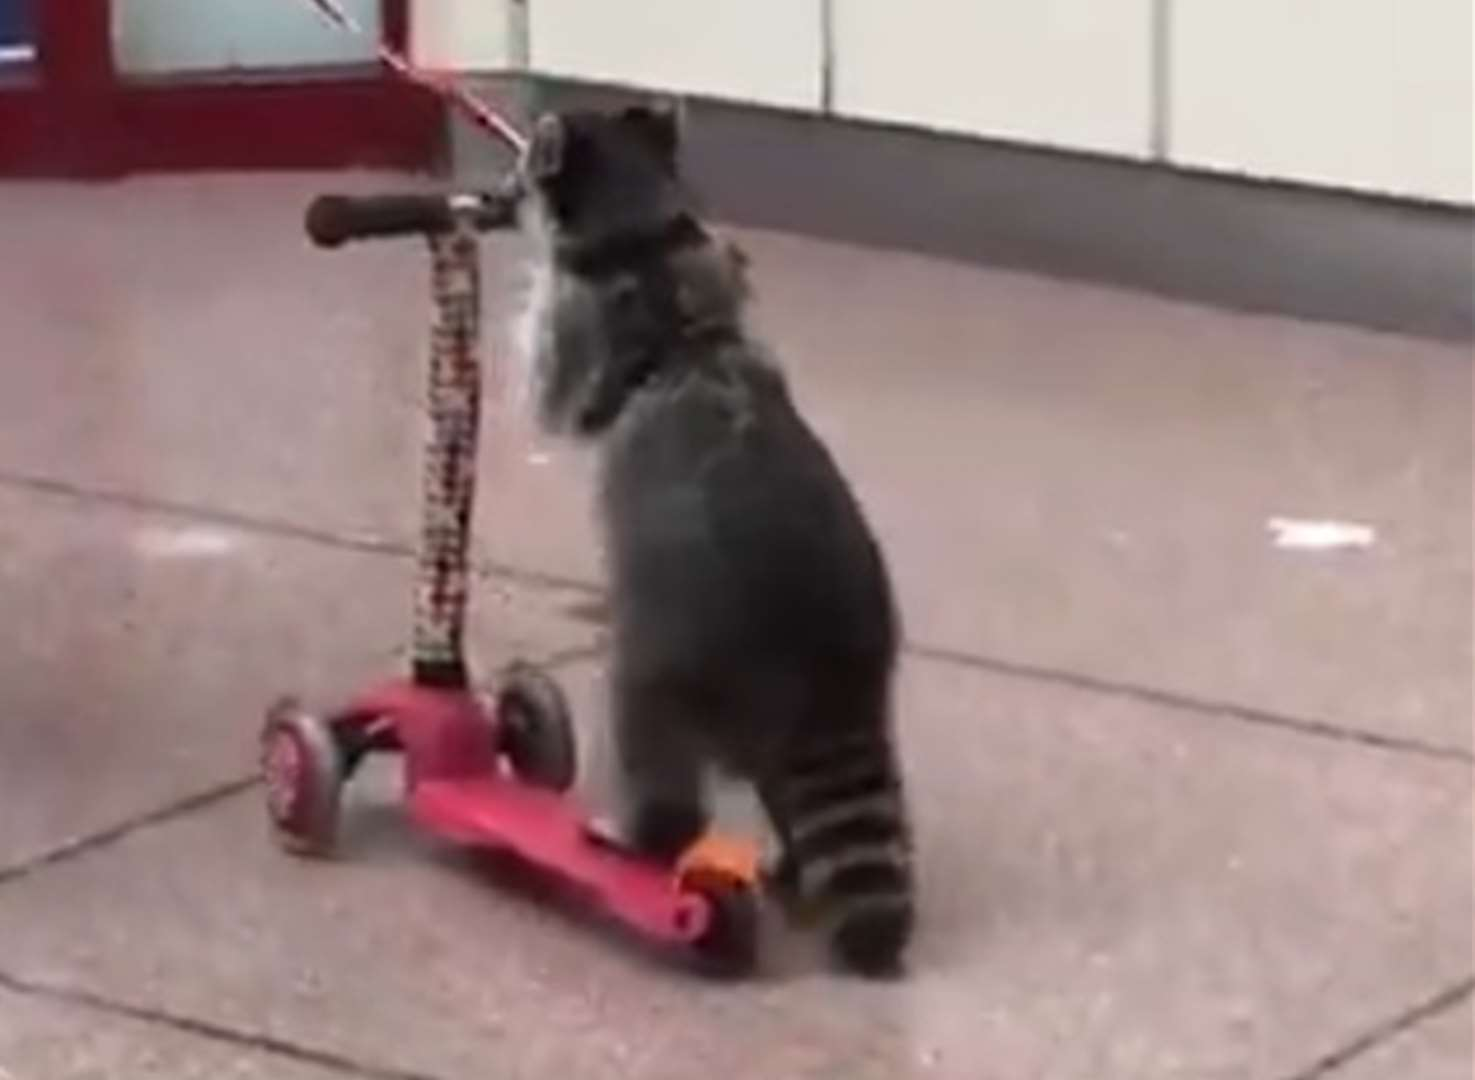 Raccoon travels in style on scooter